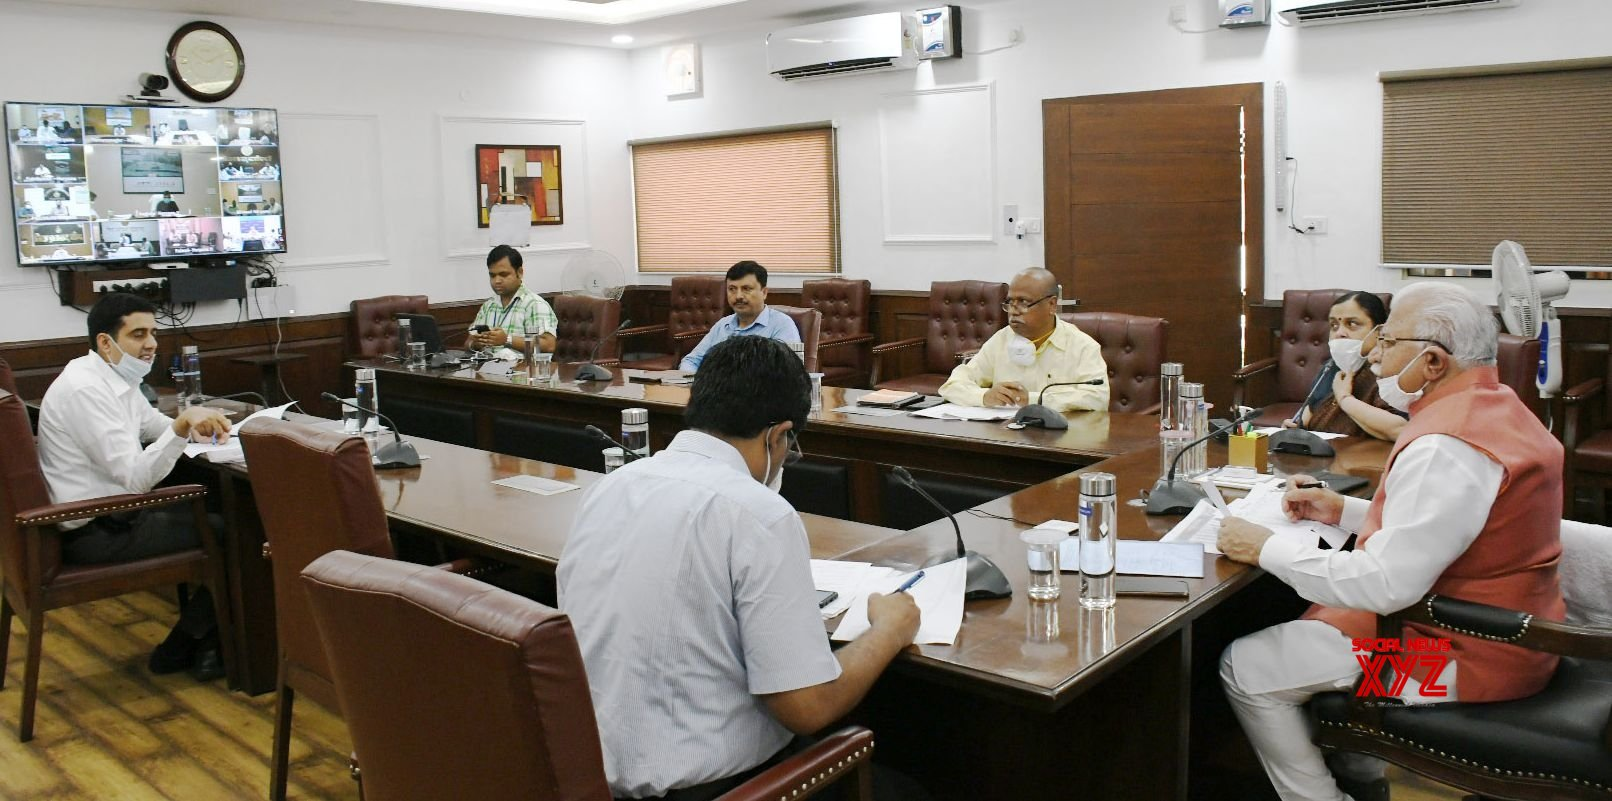 Chandigarh: Manohar Lal Khattar presides over a review meeting of the Food, Civil Supplies and Consumer Affairs Deptt #Gallery